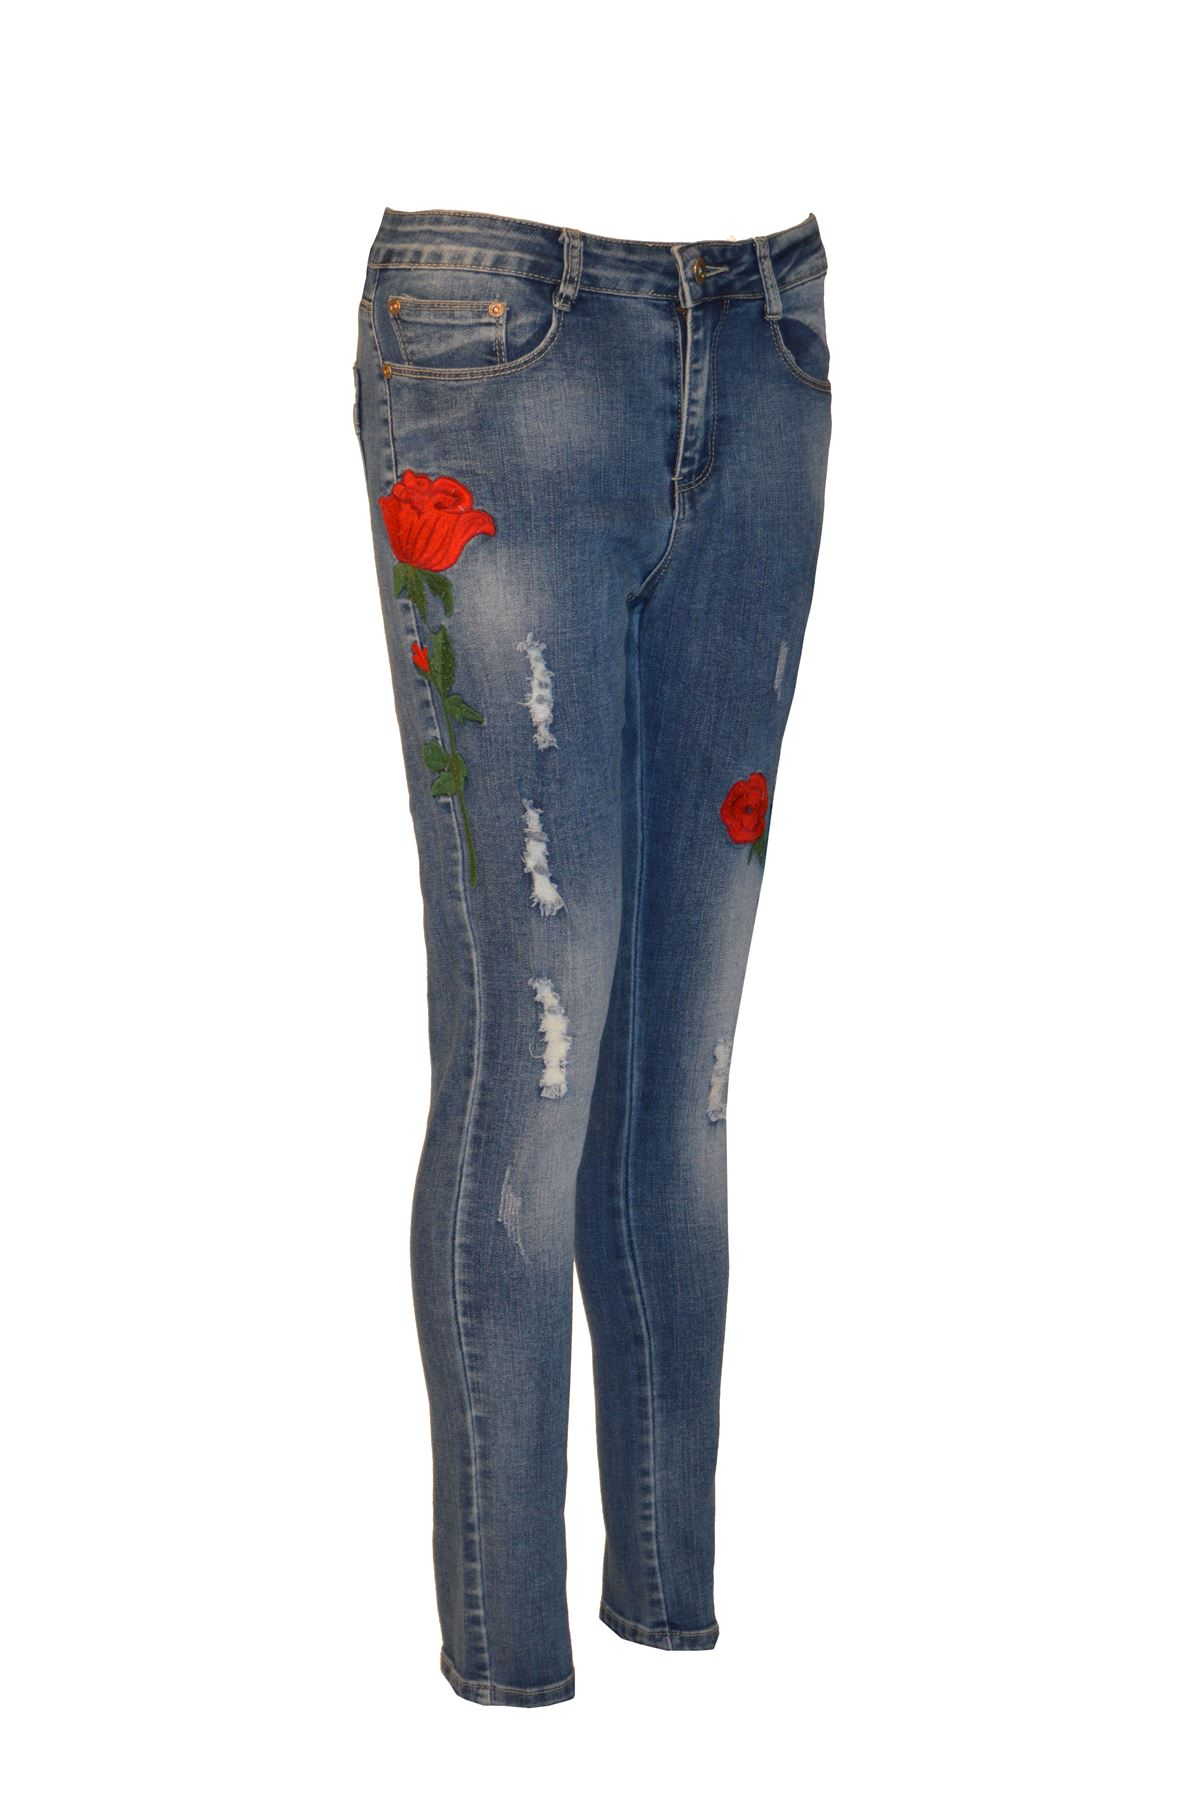 New 21 New Embroidered Pants Womens U2013 Playzoa.com